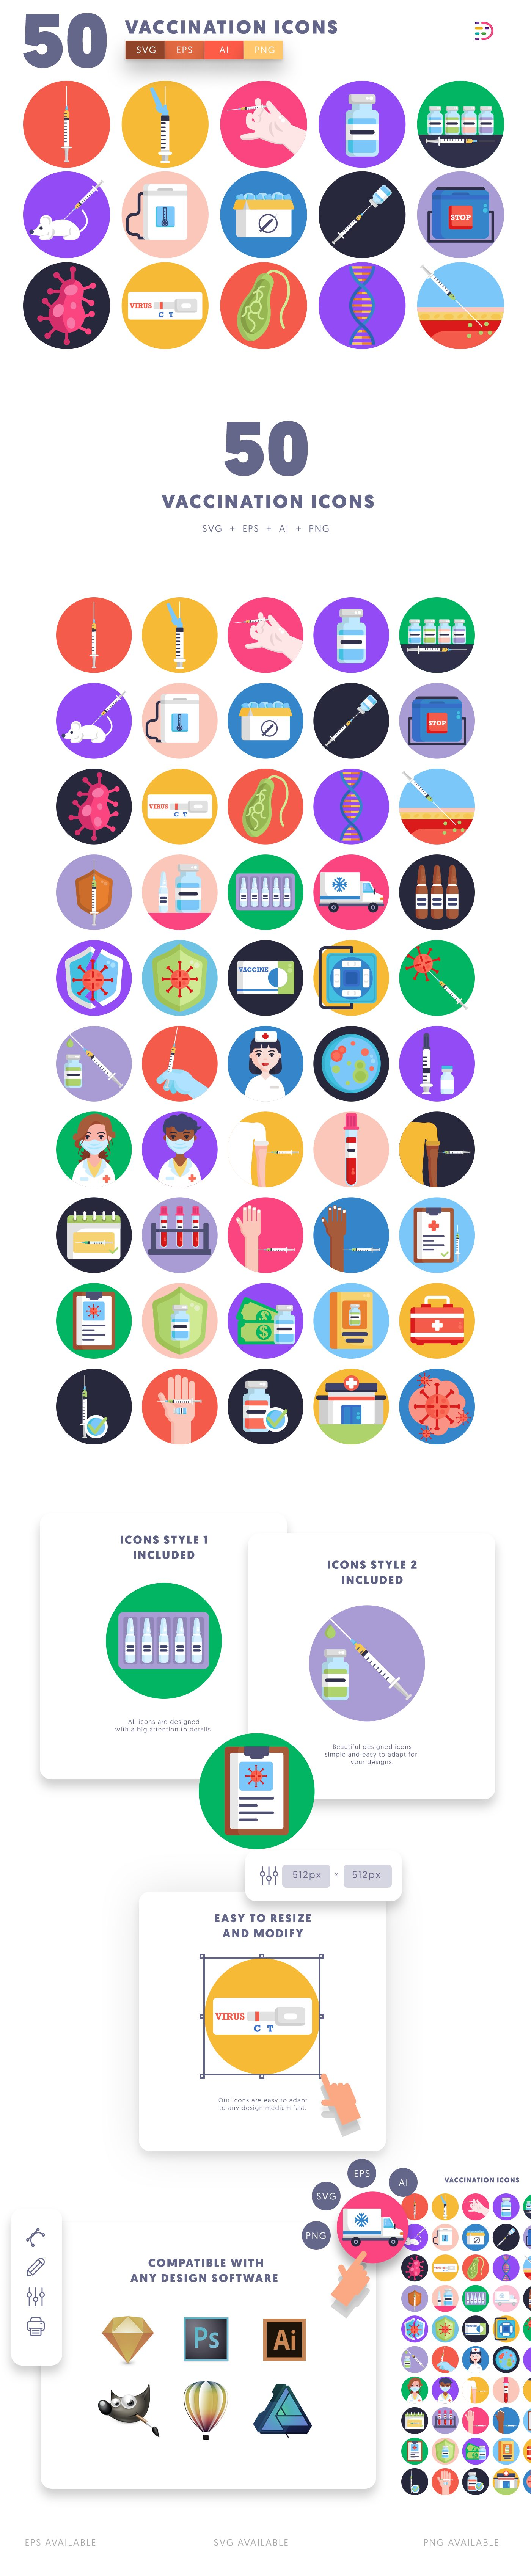 Vaccination icons info graphic